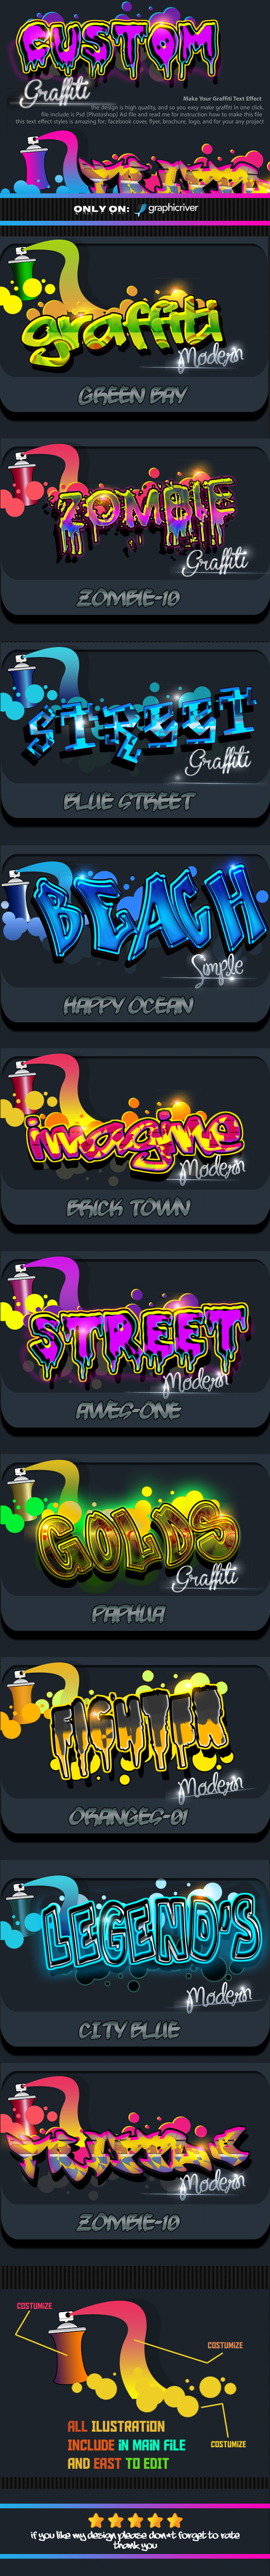 Costum Graffiti Text Effect Styles - Text Effects Styles